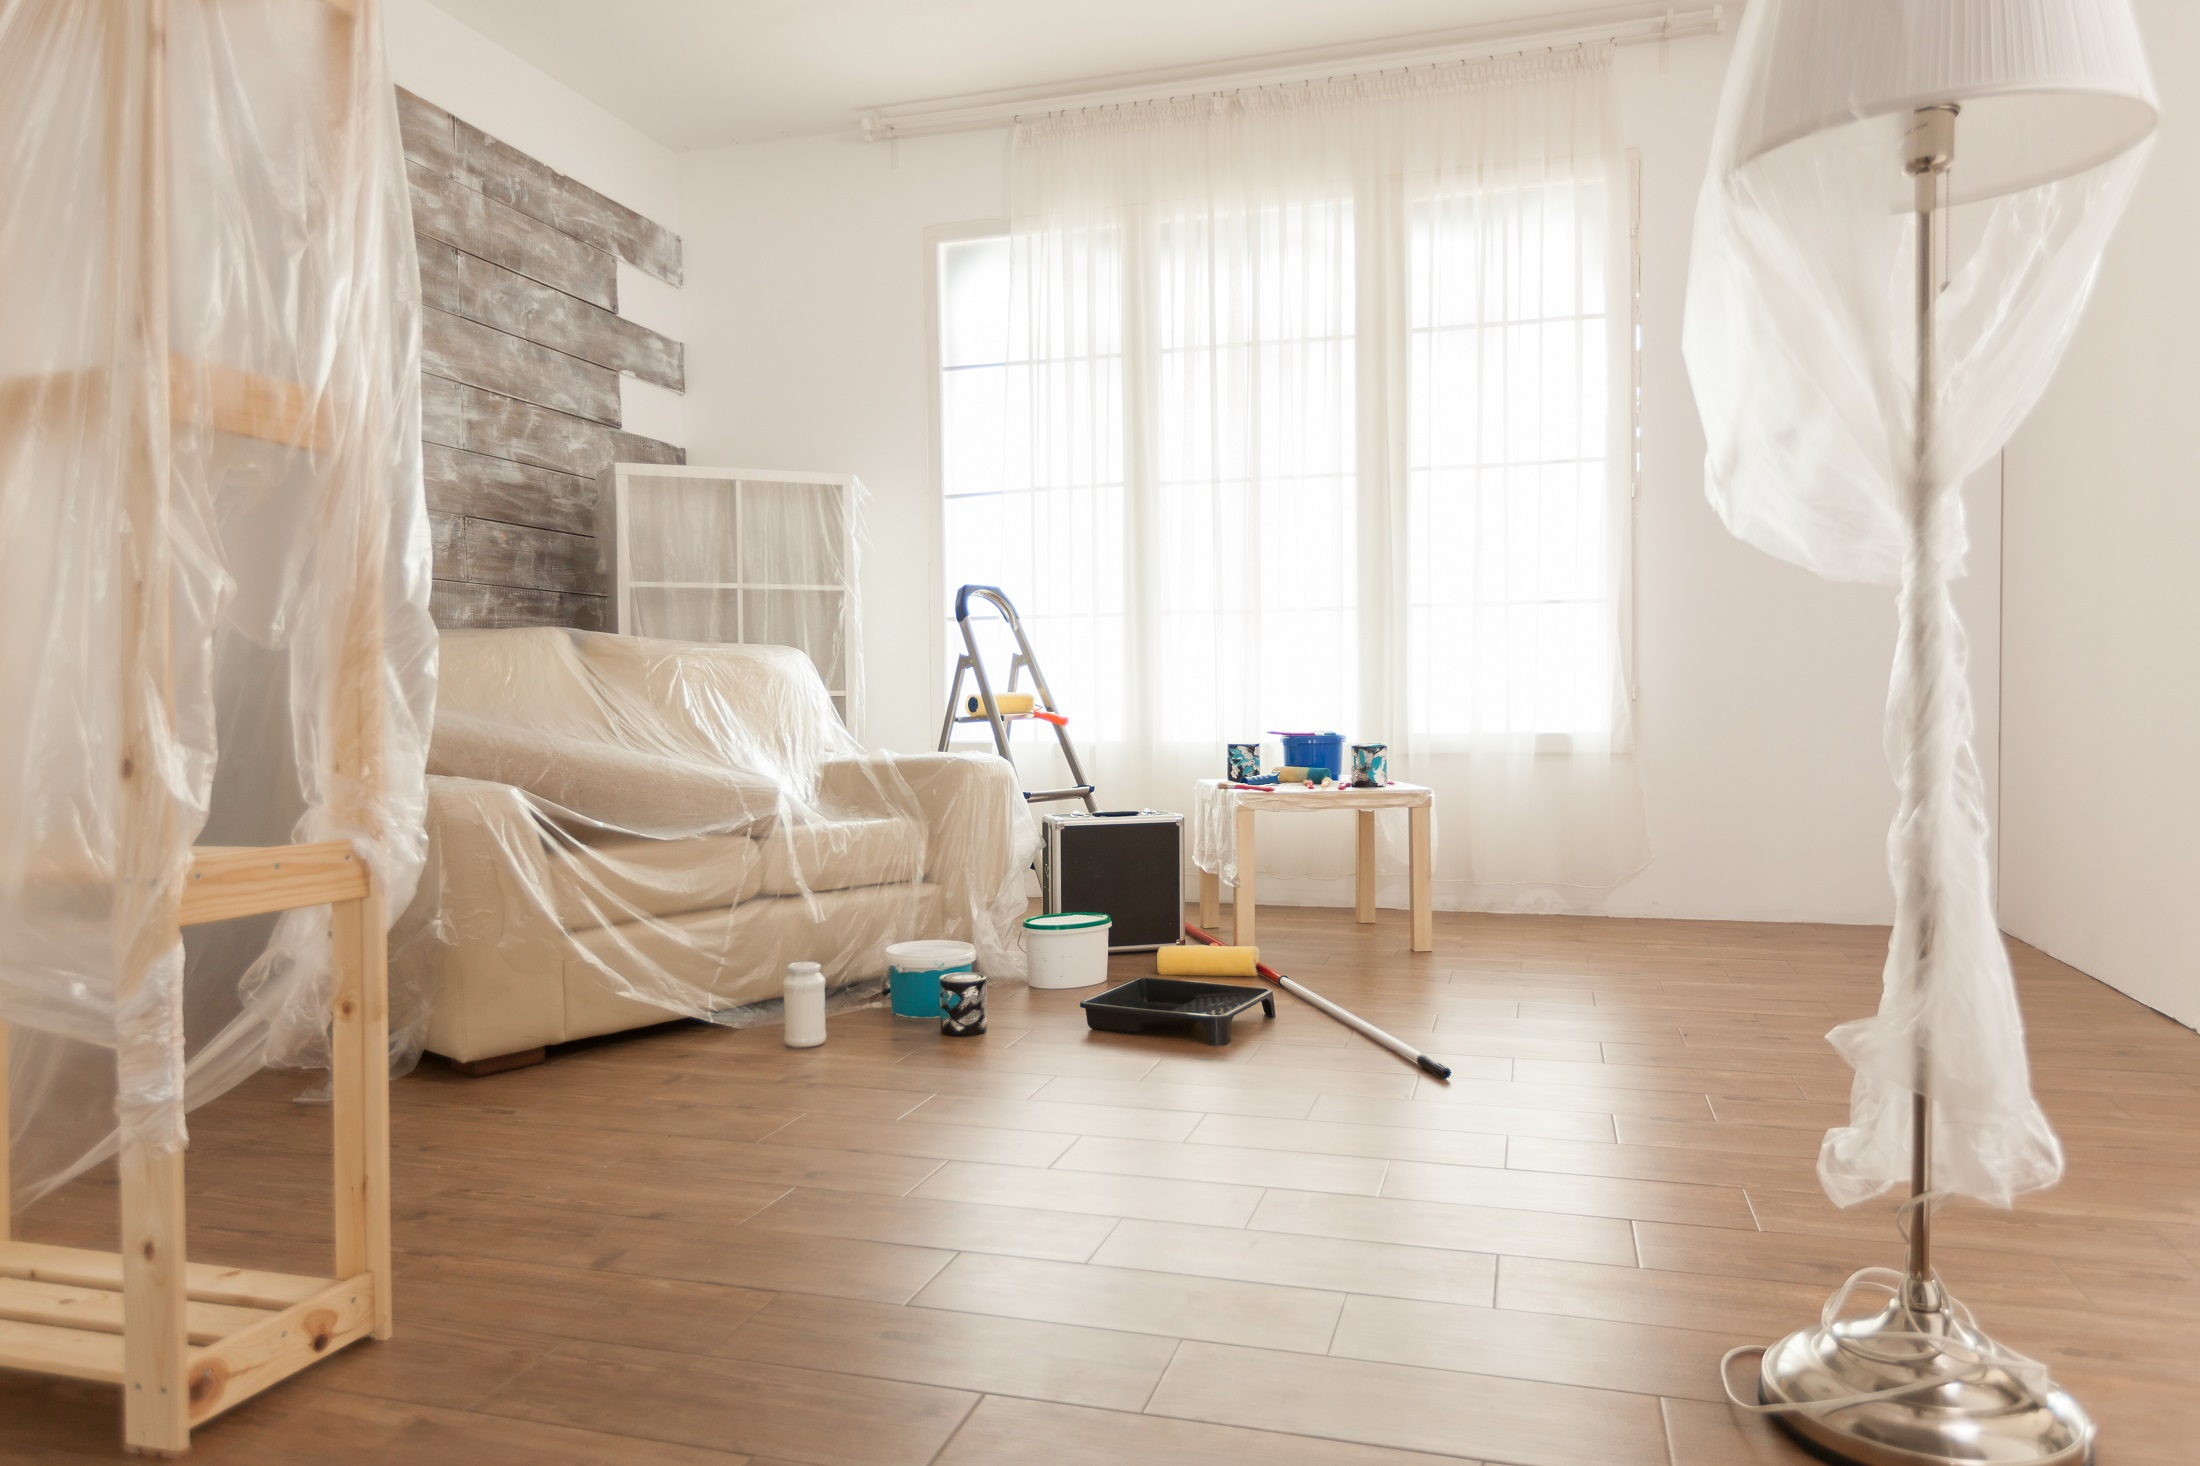 Apartment with nobody in it ready for professional renovation. Plastic sheet. Home during renovation, decoration and painting. Interior apartment improvement maintenance. Roller, ladder for house repair